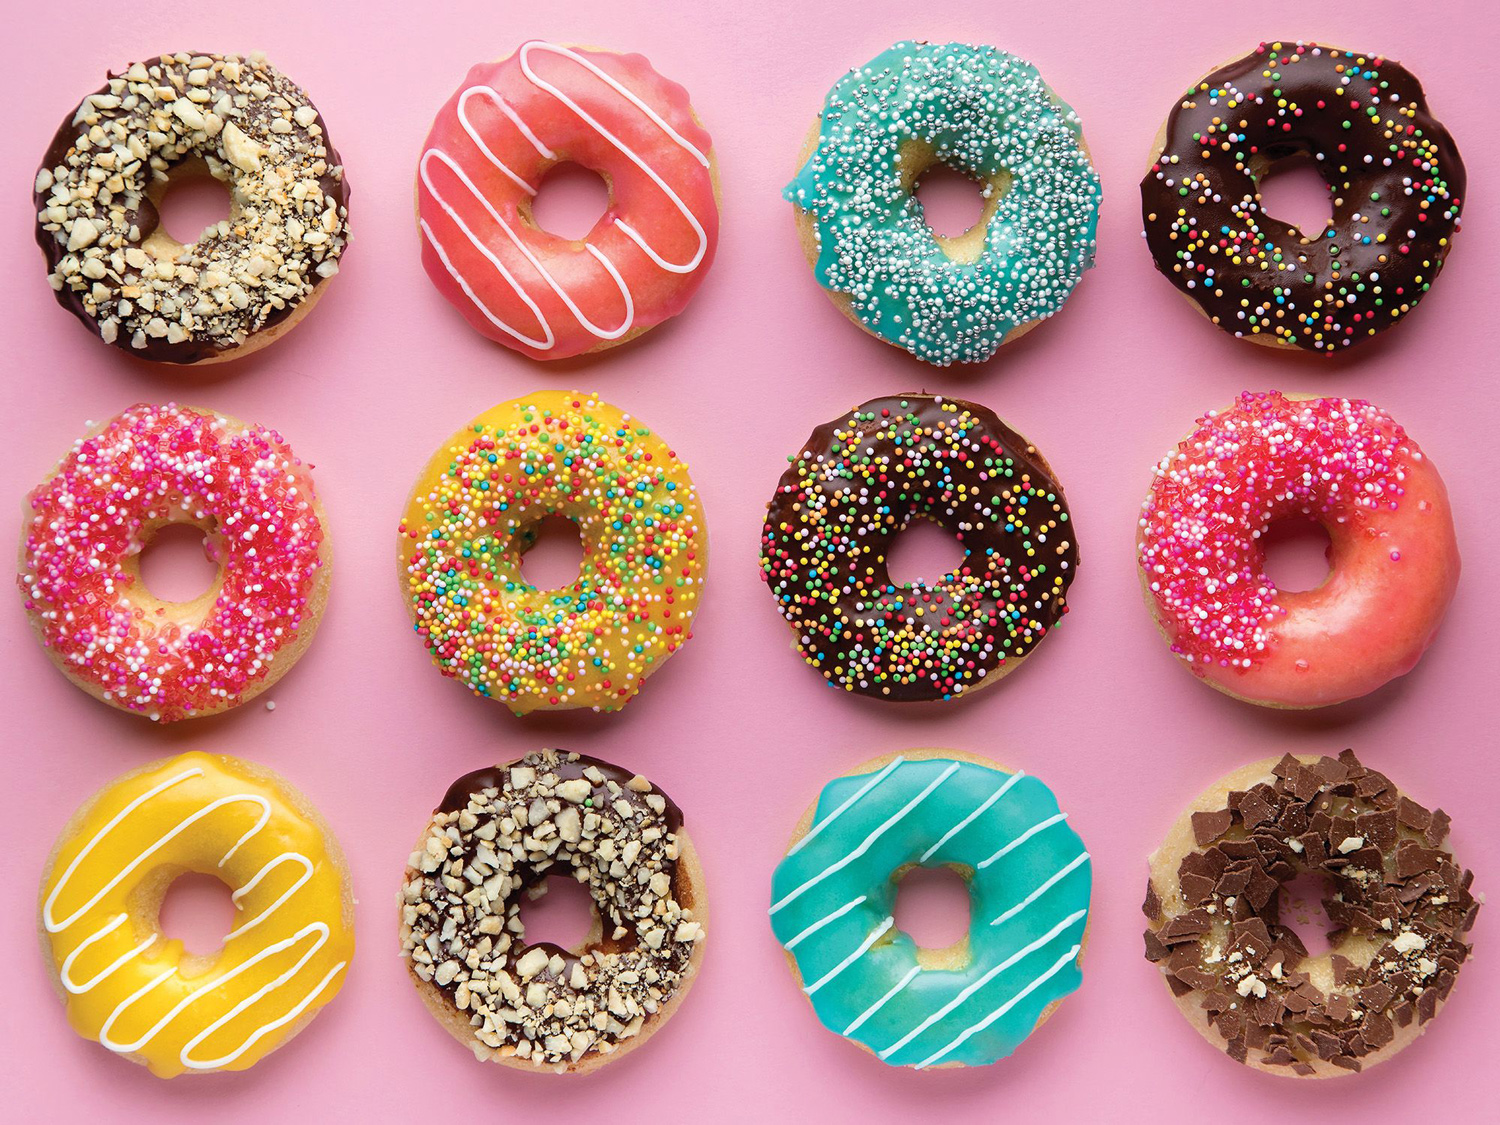 Craving Donuts Food and Drink Jigsaw Puzzle